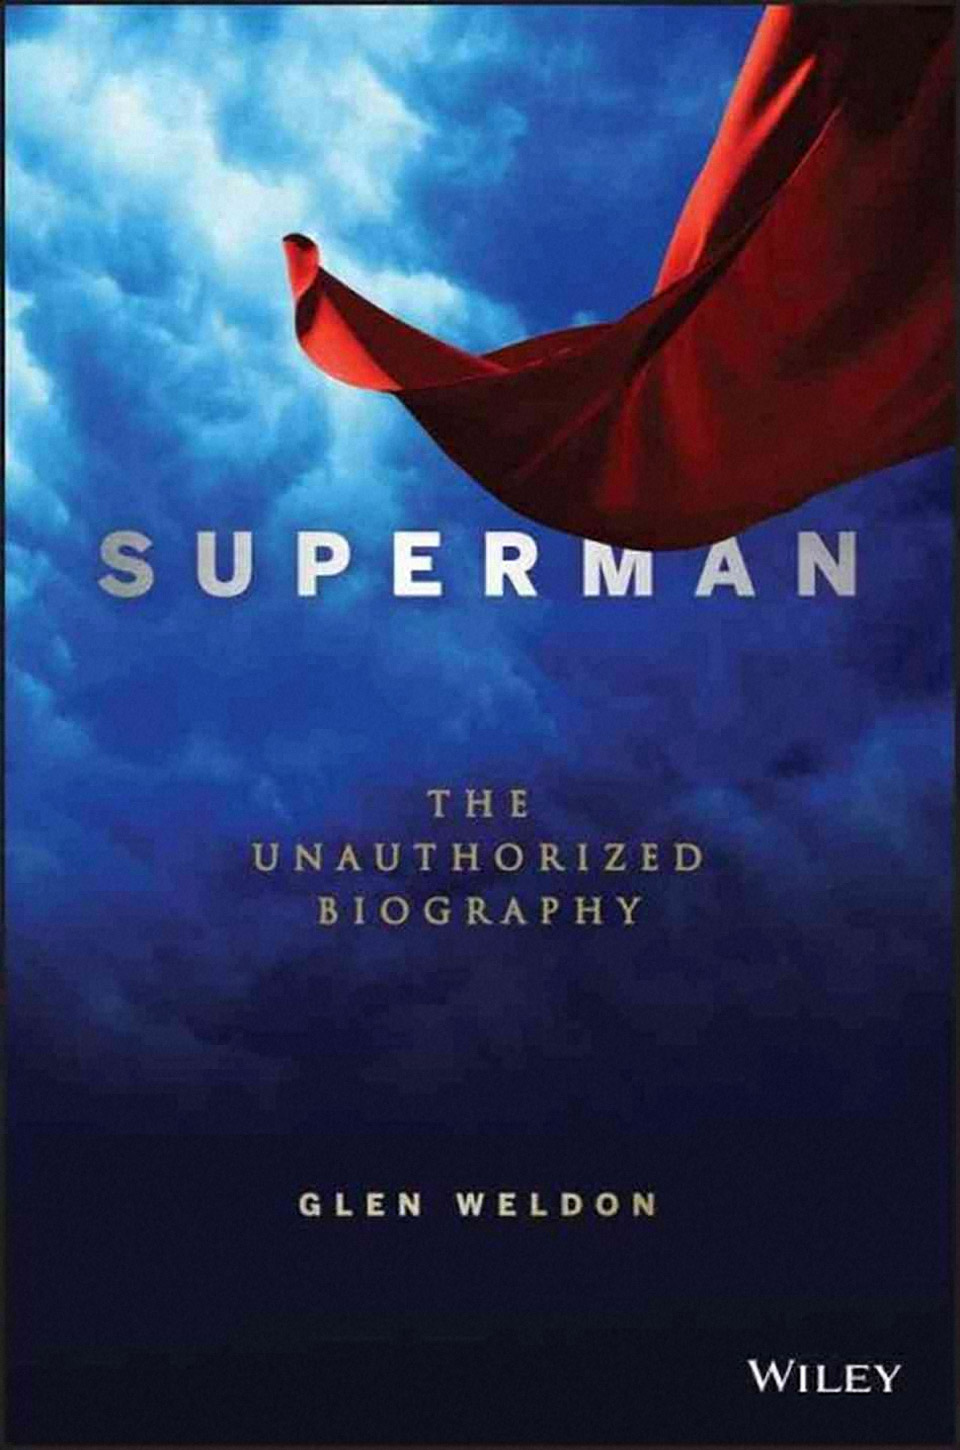 Glen Weldon Discusses Superman's Place in Culture